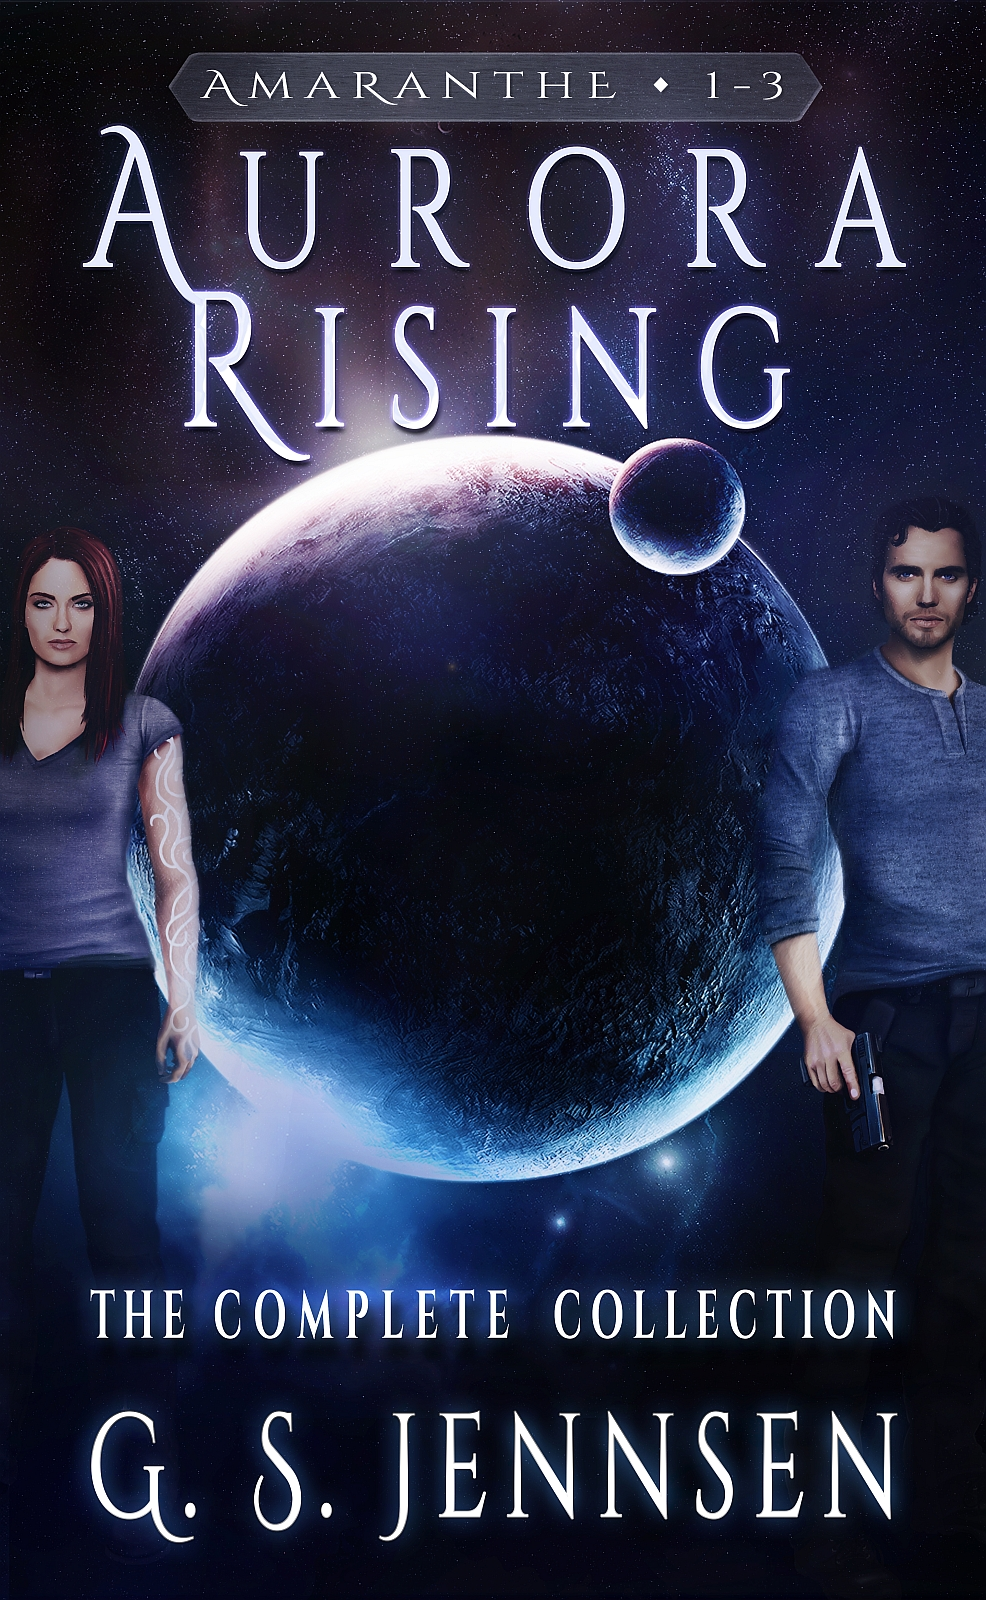 AURORA RISING: THE COMPLETE COLLECTION